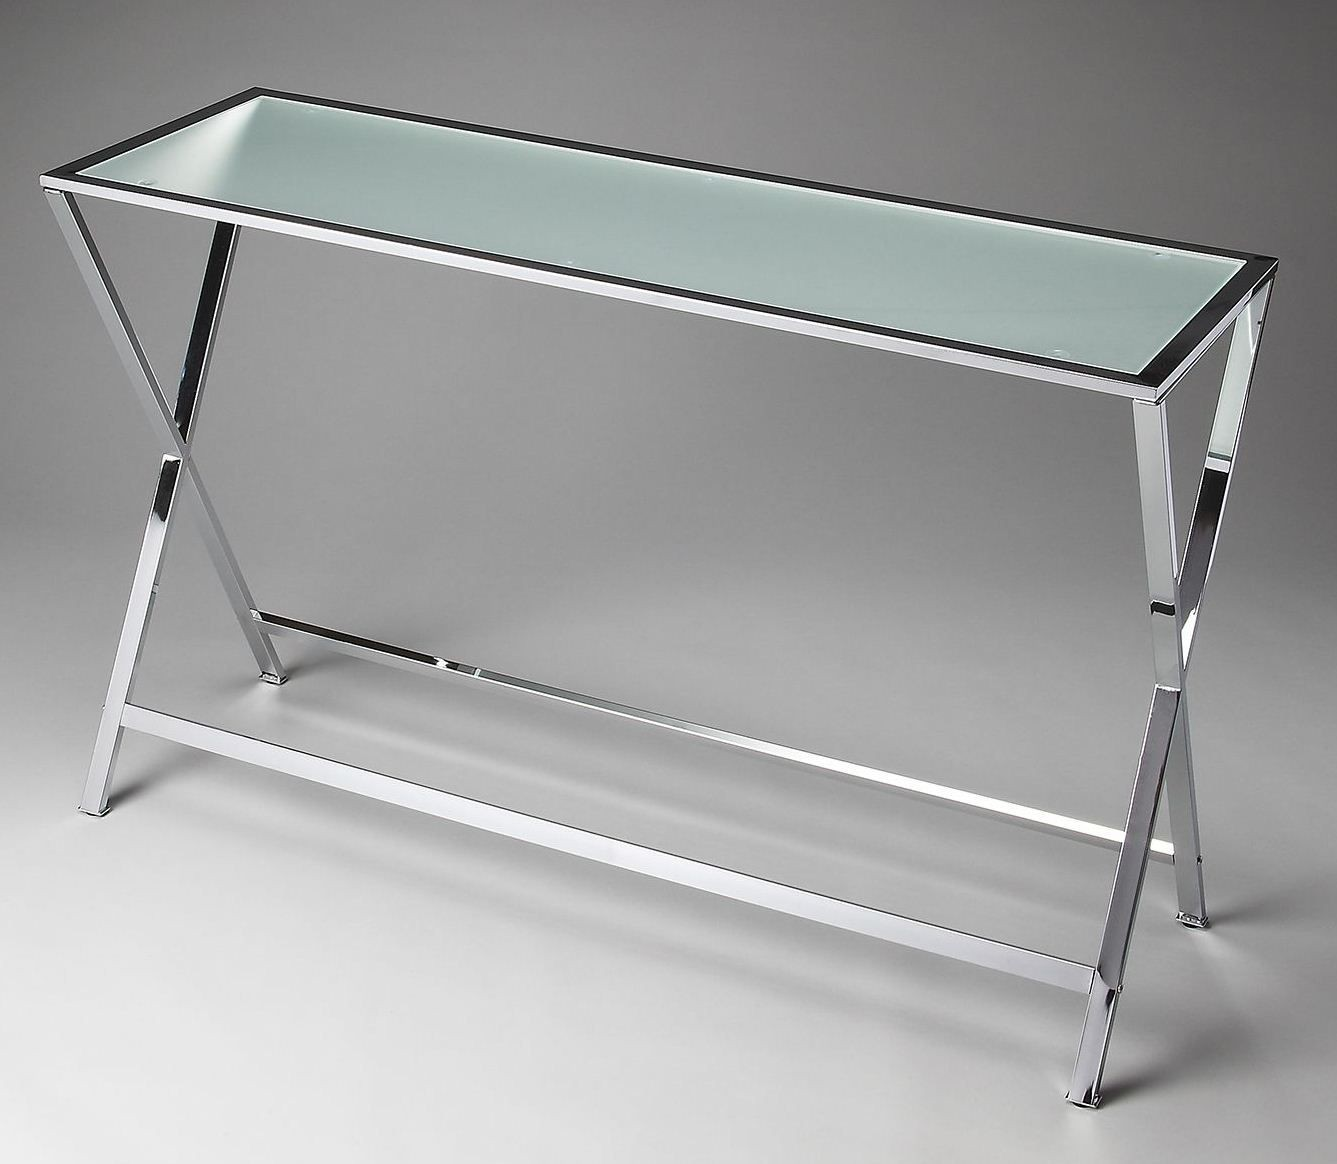 Bergen loft frosted glass console table from butler 3290307 coleman furniture Frosted glass furniture